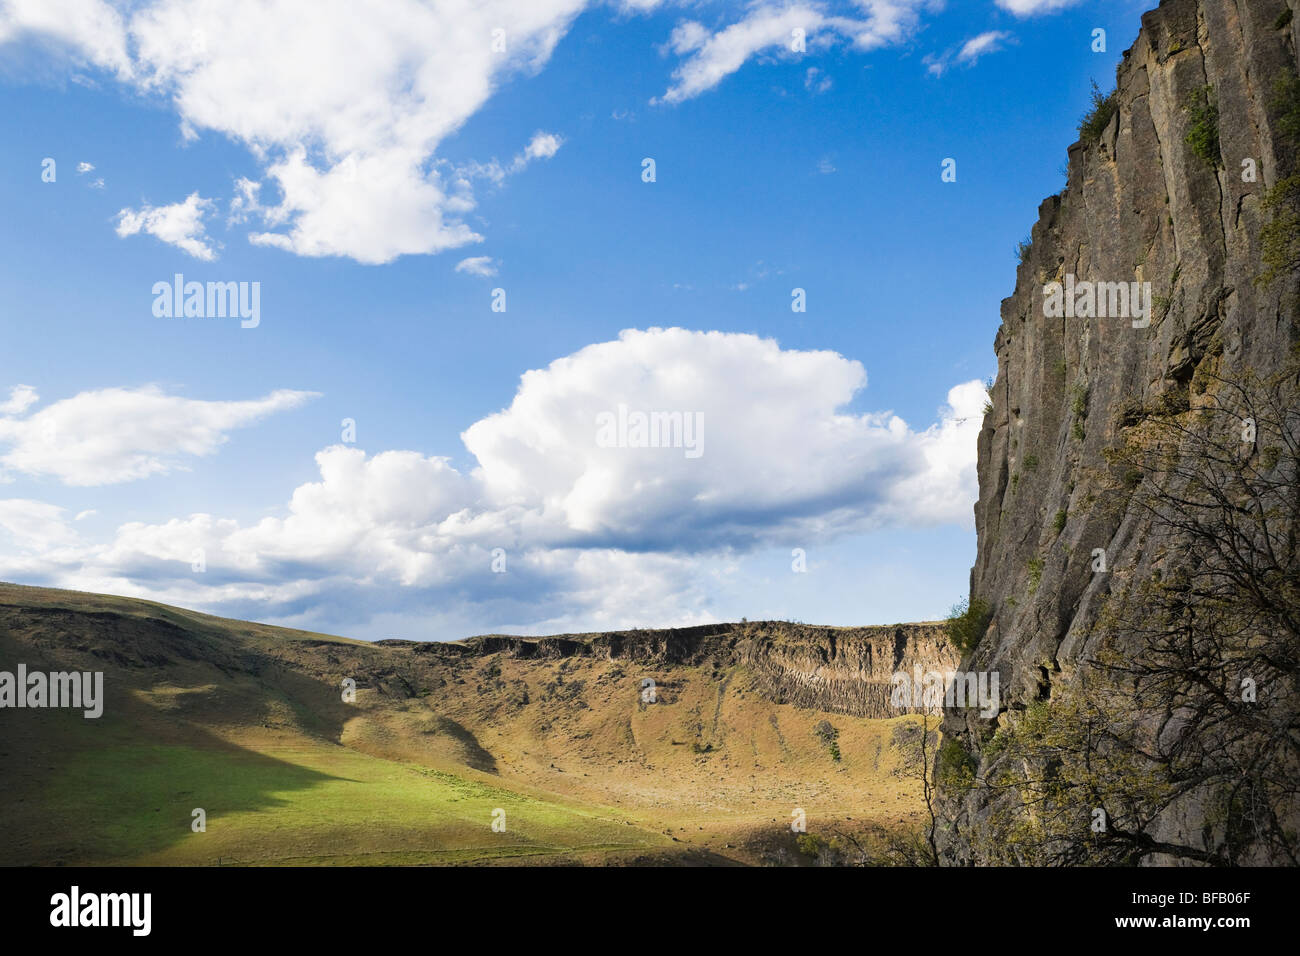 View of the Tieton River Canyon in Eastern Washington, USA. - Stock Image